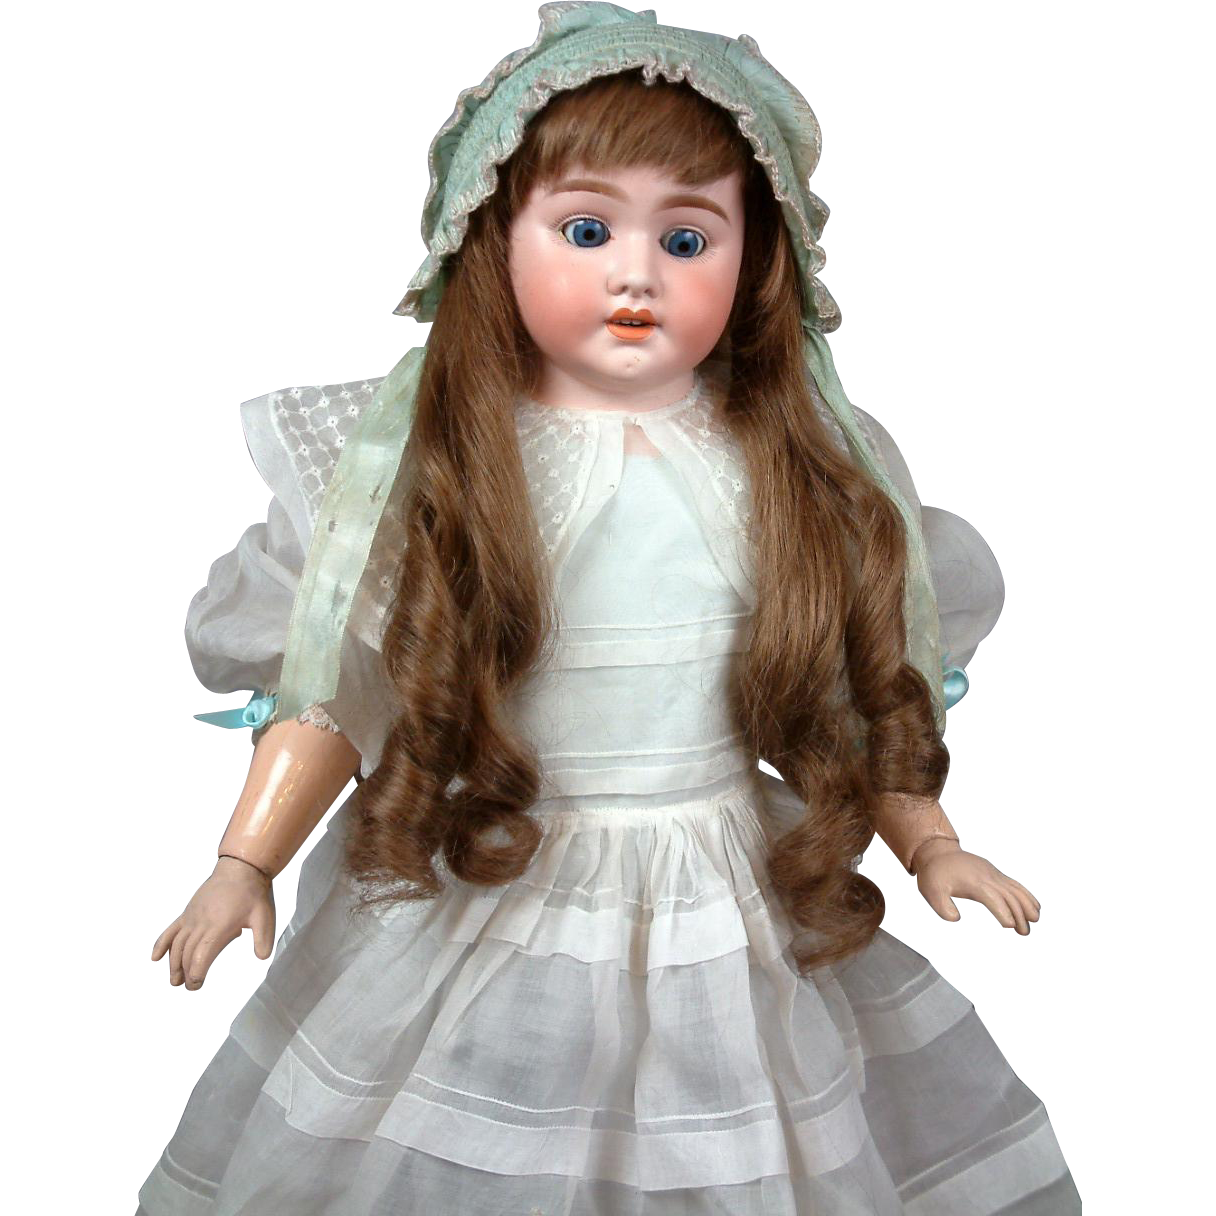 "Schoneau & Hoffmeister 27"" Antique Bisque Doll on Kidskin Body with Composition Arms"